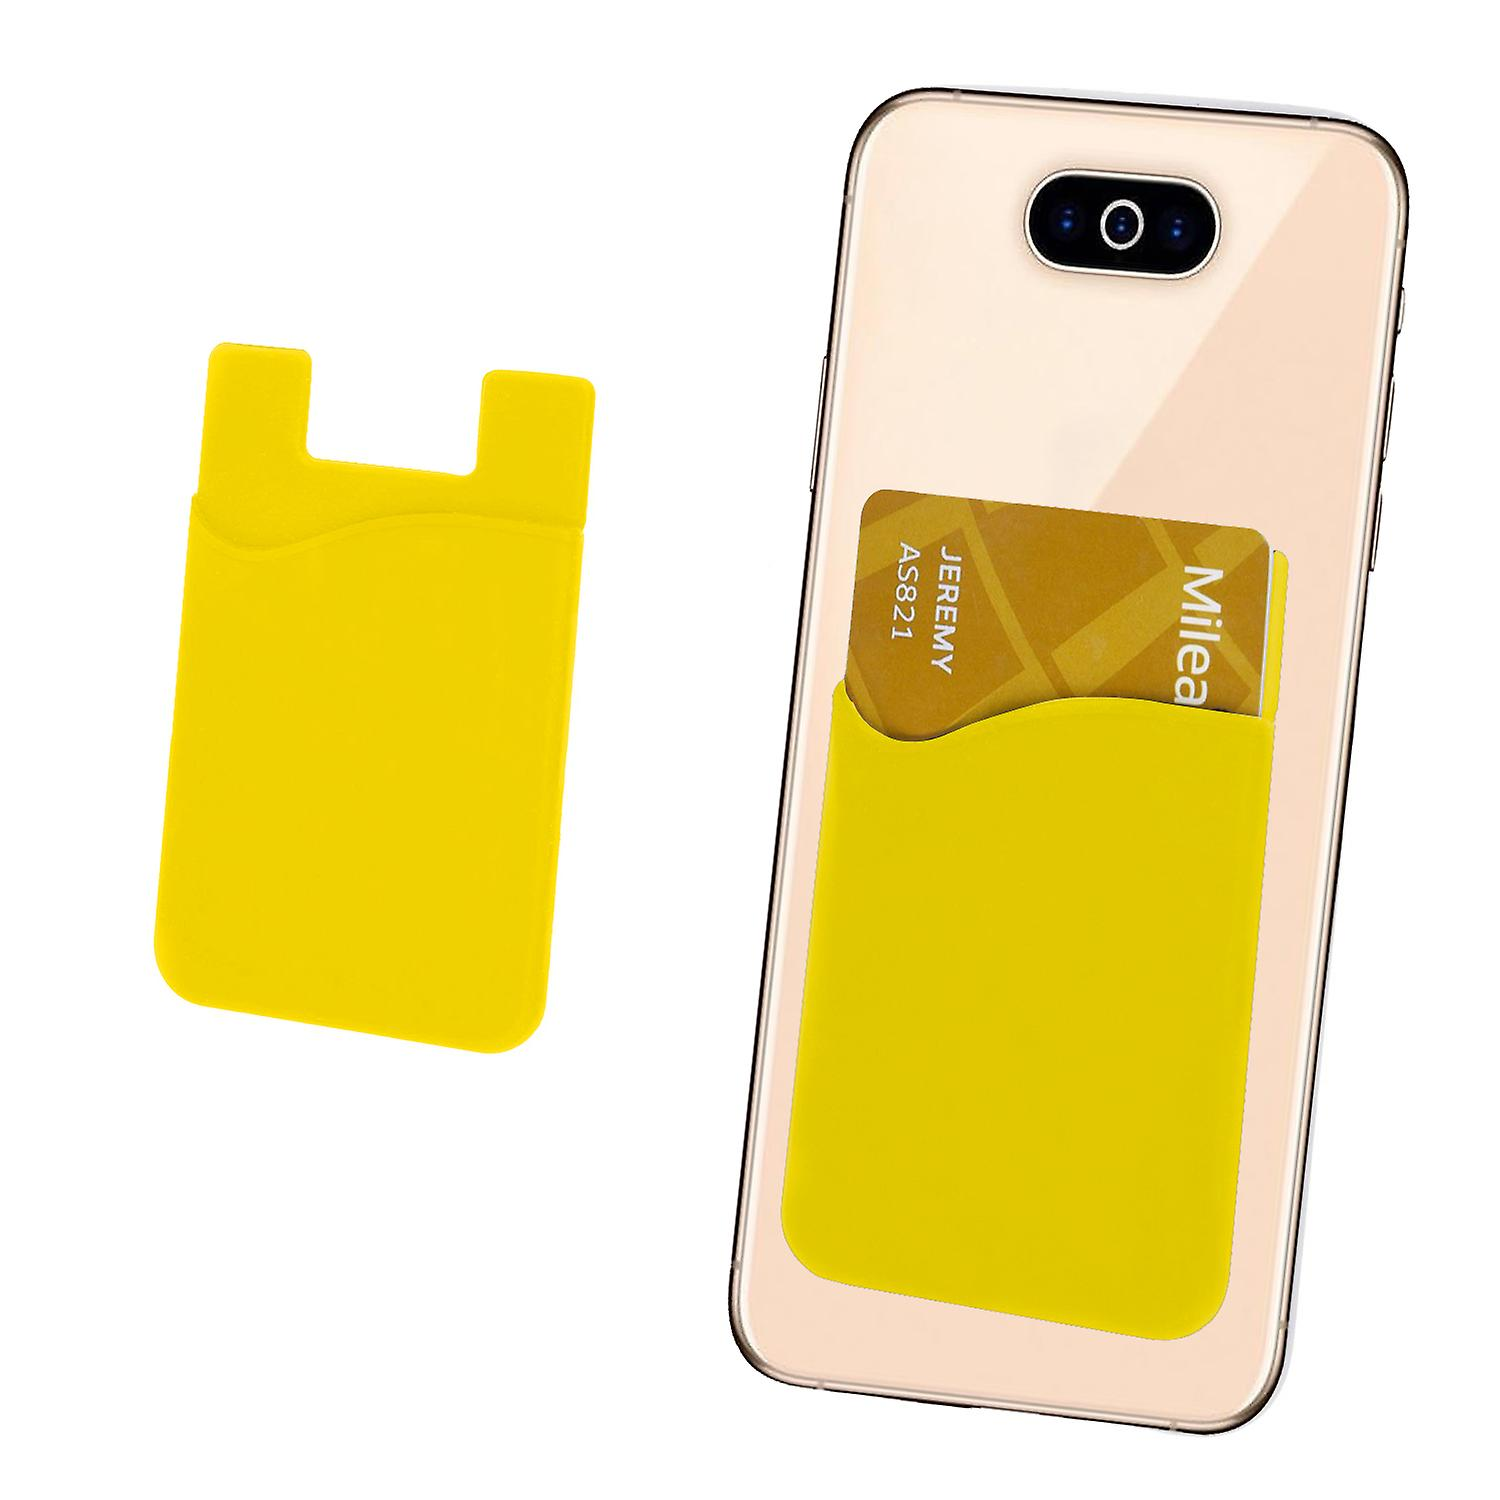 Silicone Credit / Debit Card Pouch For Zen Admire Unity Device Wallet Holder Stick On Adhesive (Yellow)